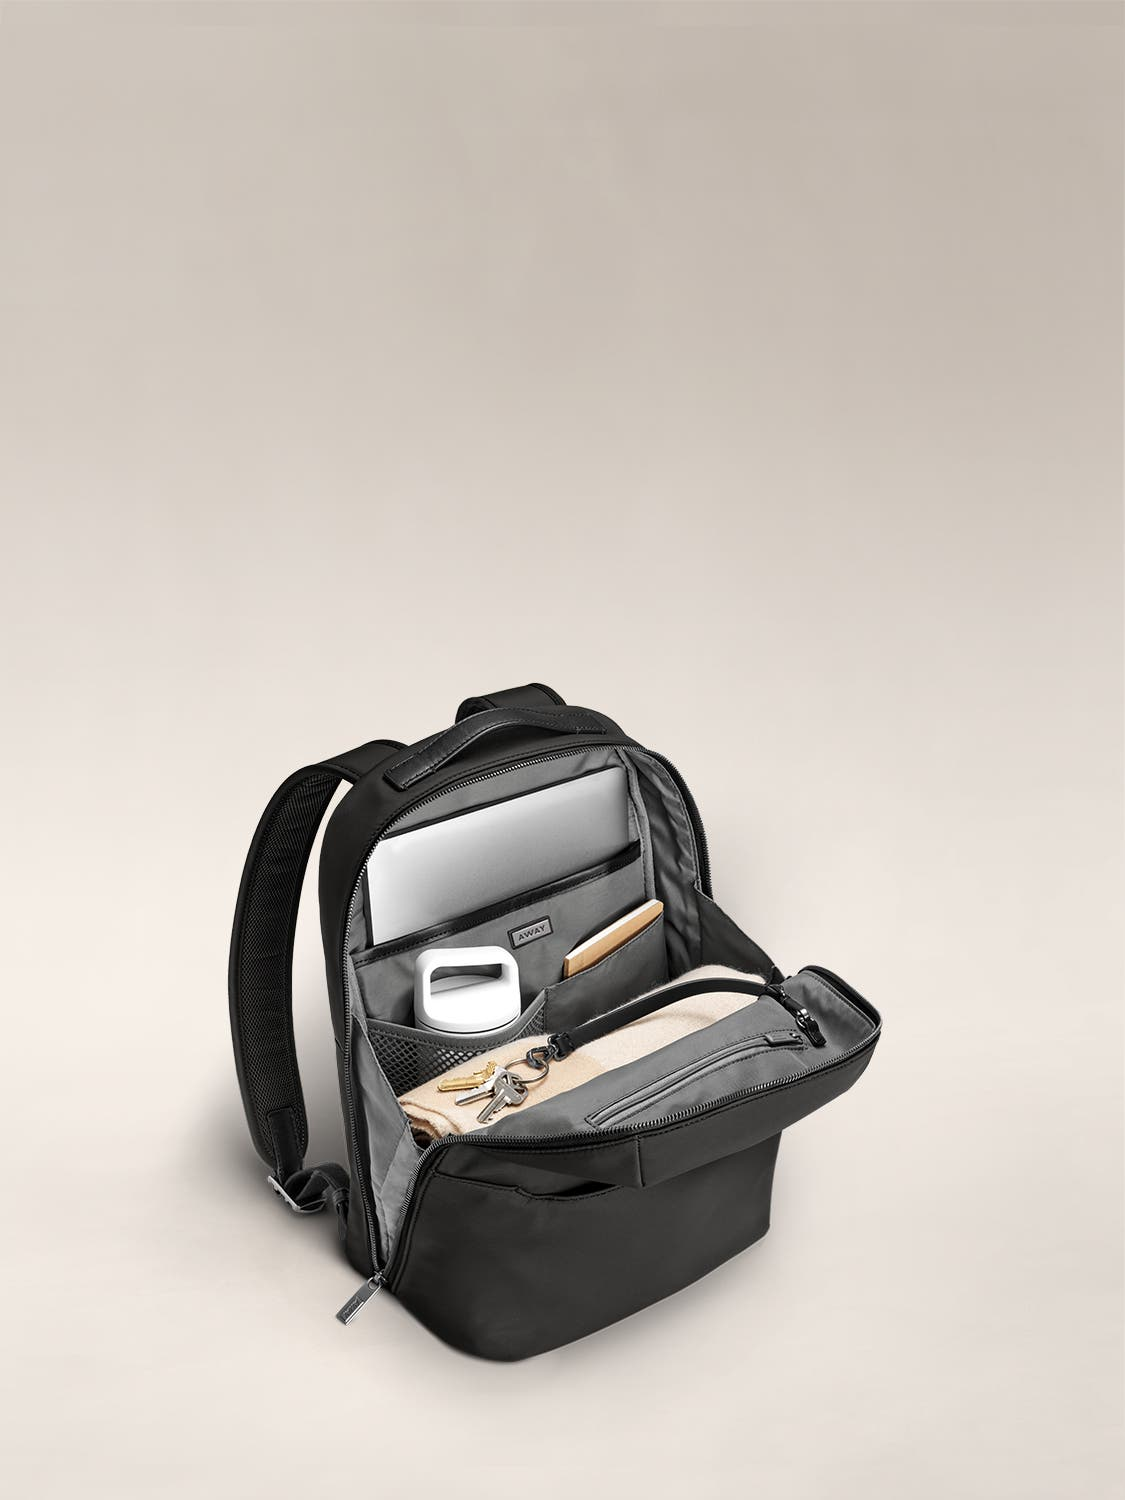 Inside view of a small backpack in black with internal pockets organized with various accessories.